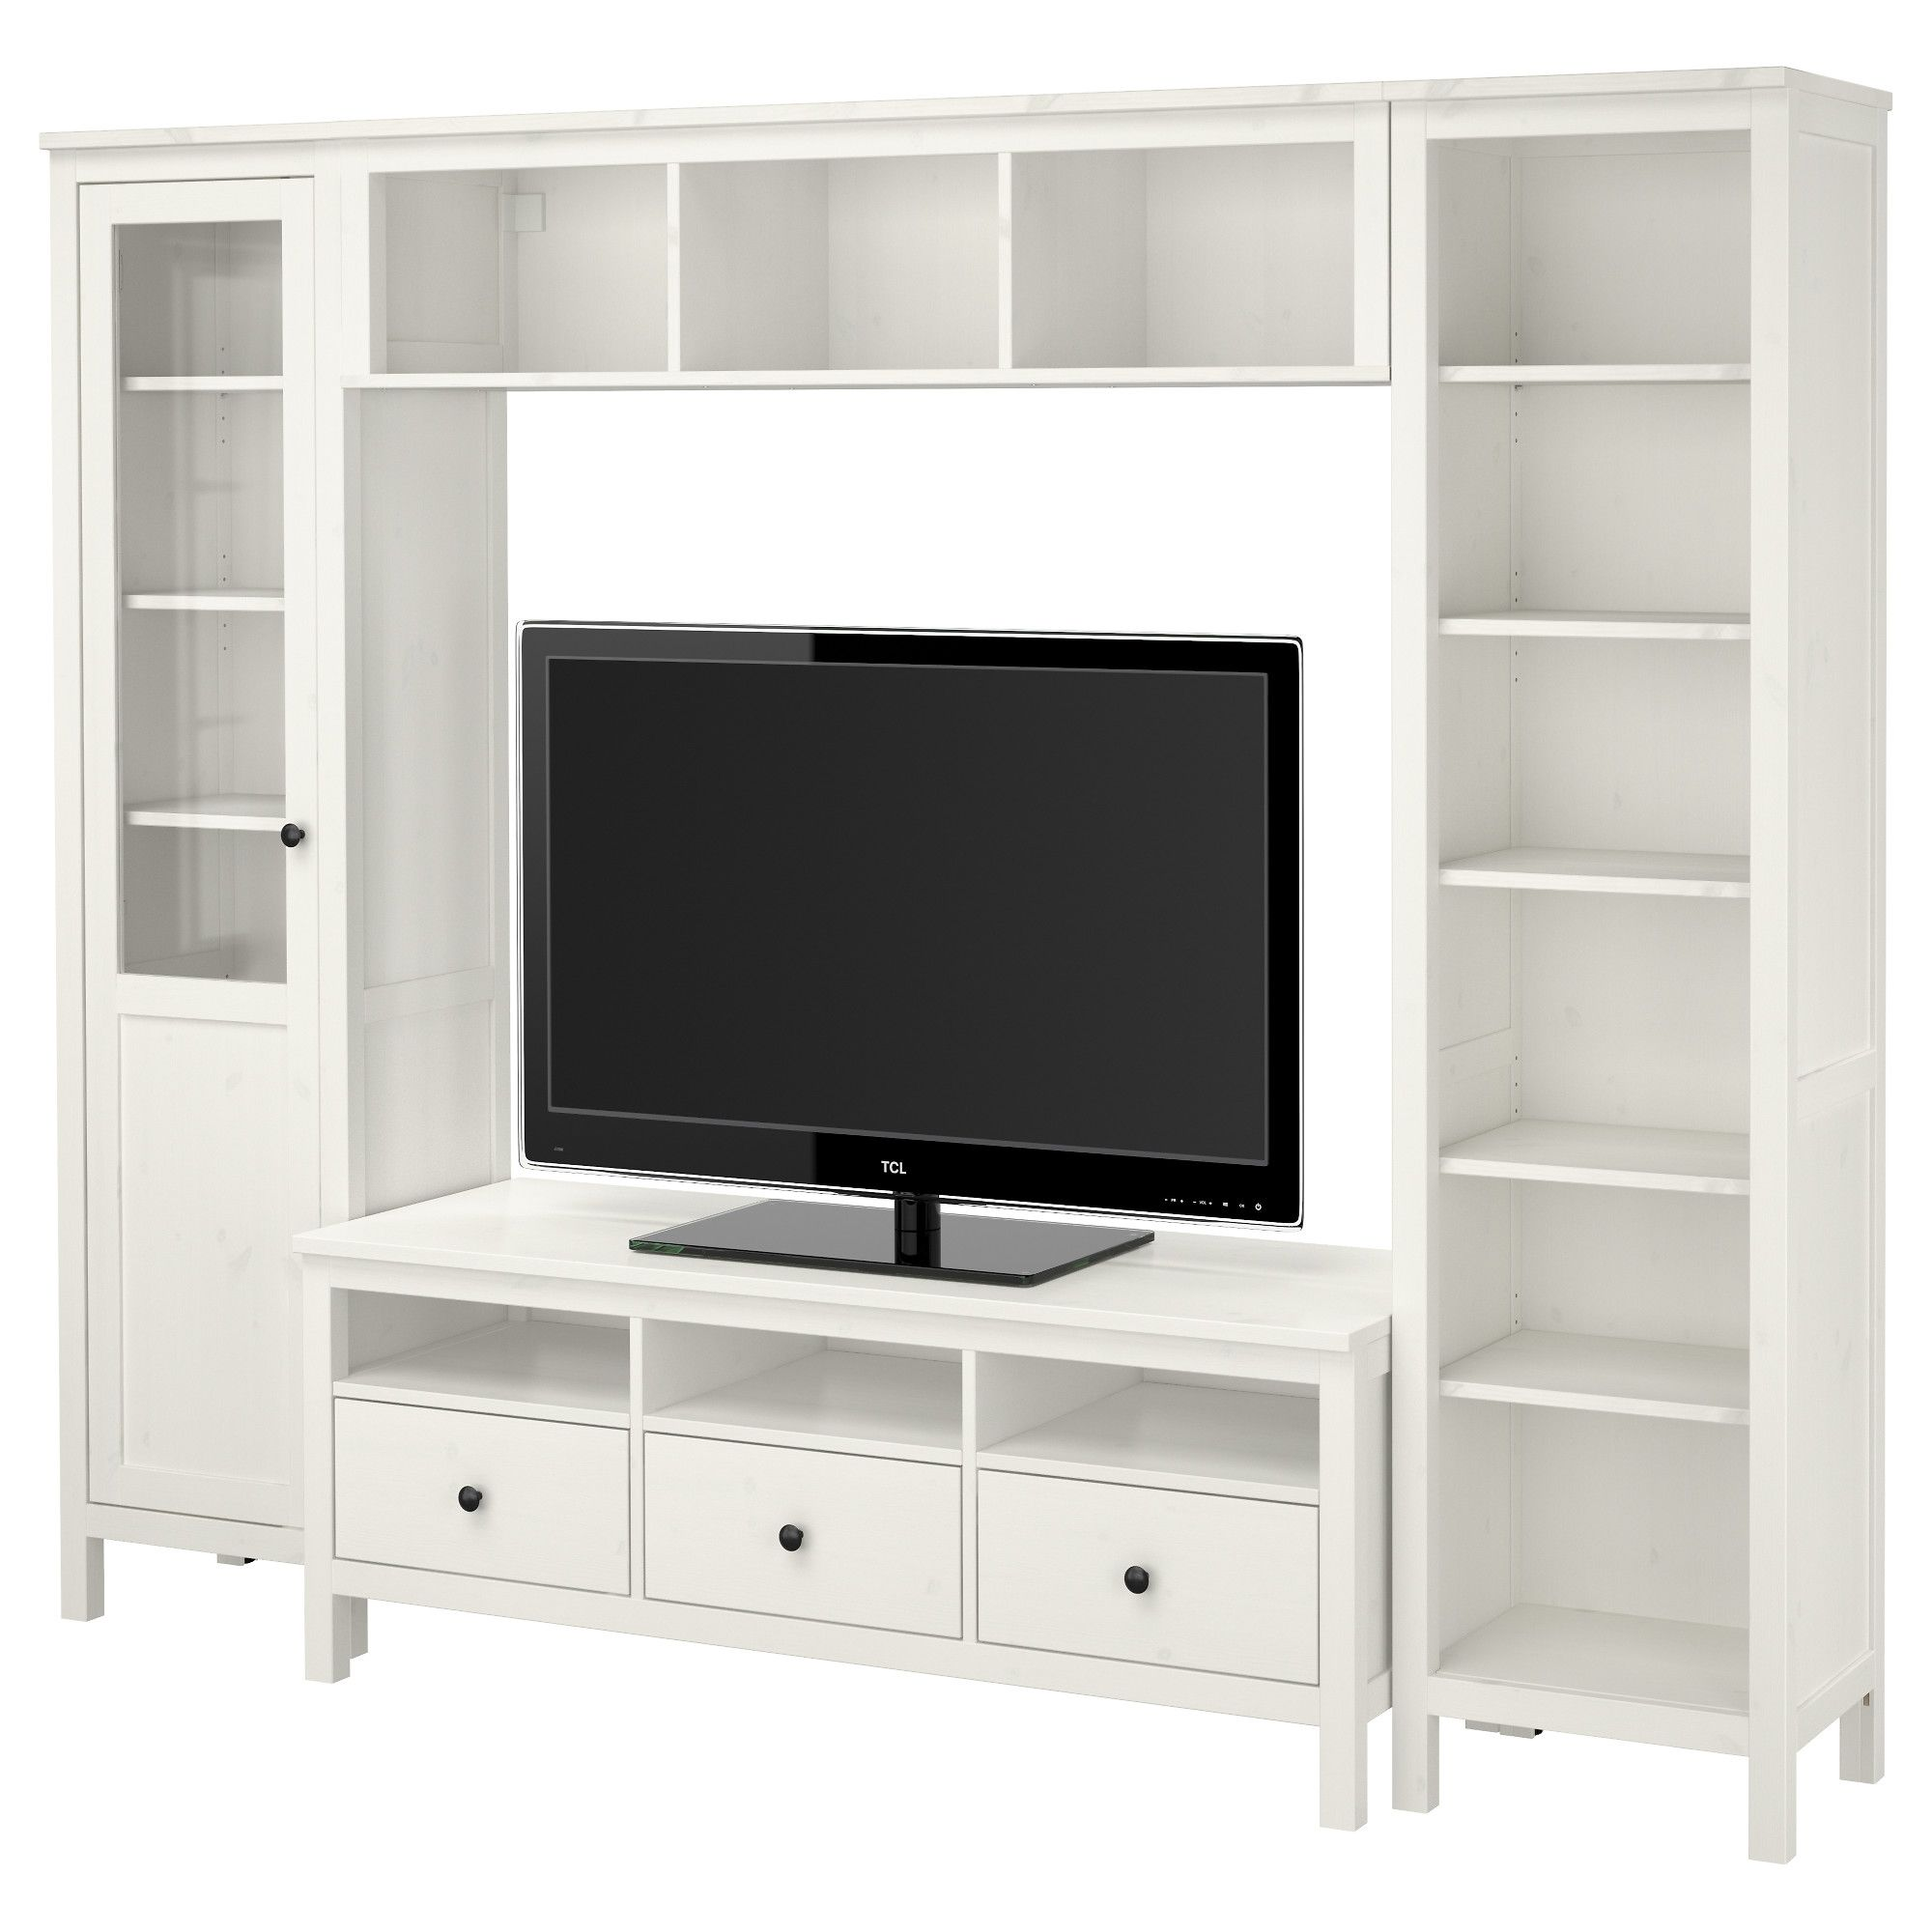 Us Furniture And Home Furnishings With Images Tv Storage